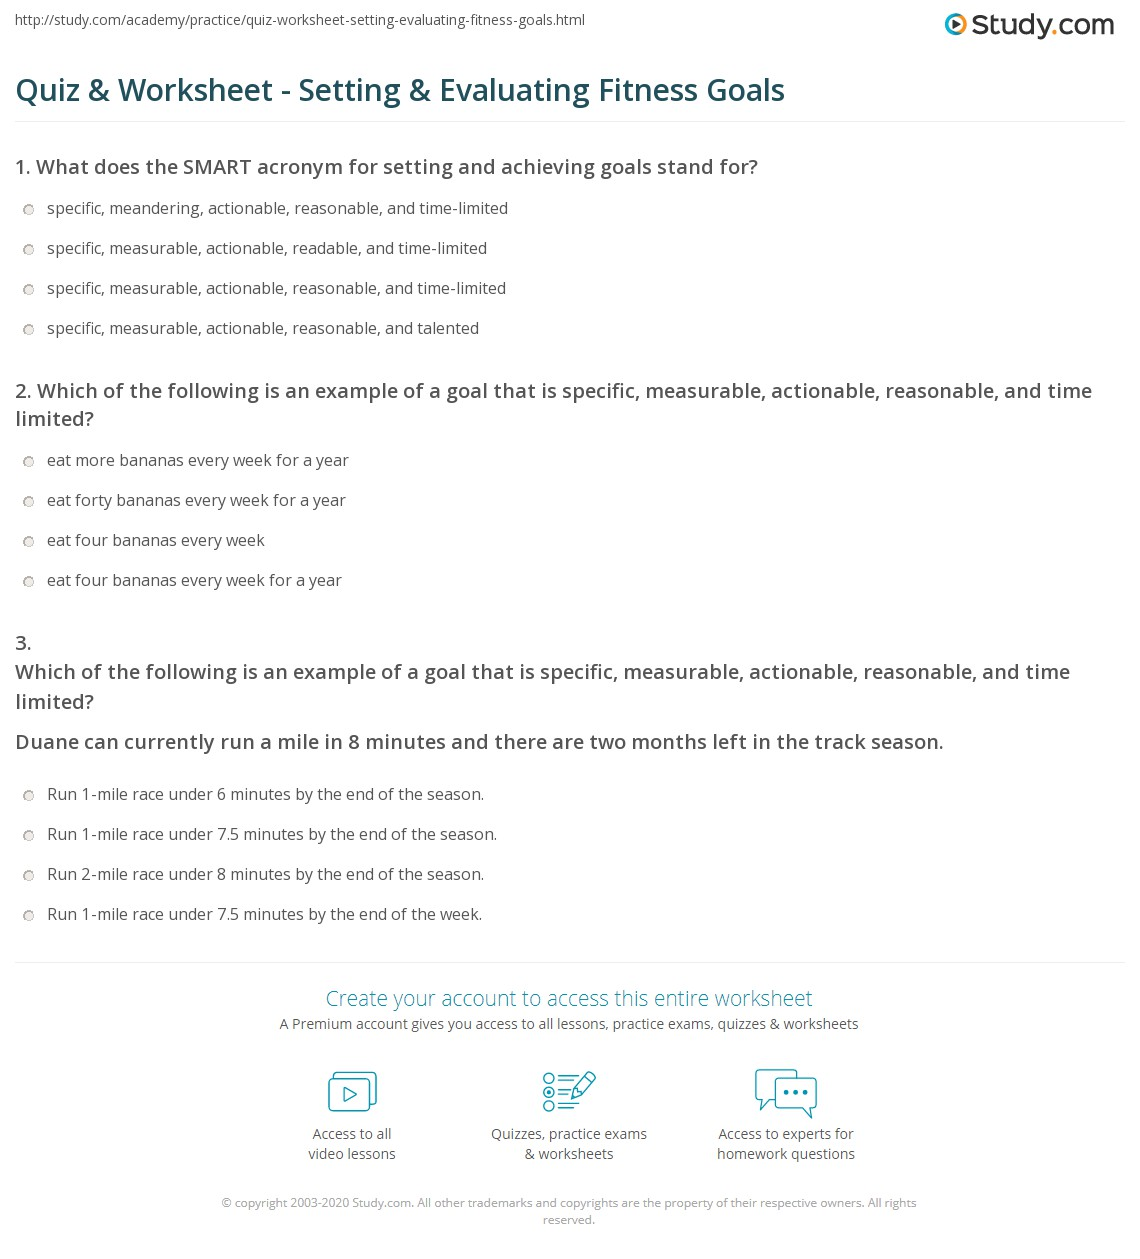 Worksheets Fitness Goals Worksheet quiz worksheet setting evaluating fitness goals study com print how to establish monitor worksheet